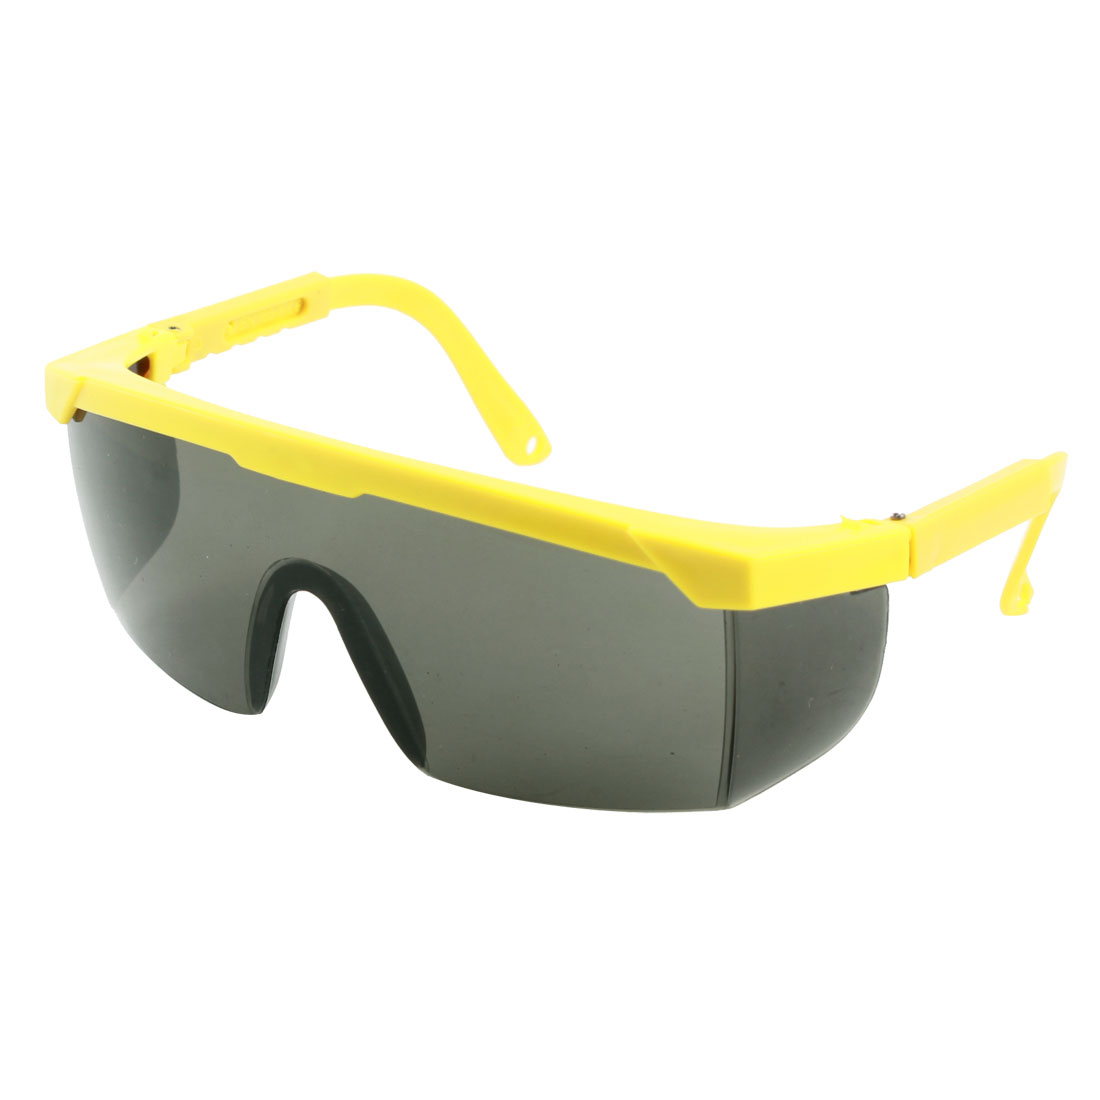 Yellow Adjustable Plastic Arms Protective Welding Sunglasses Glasses